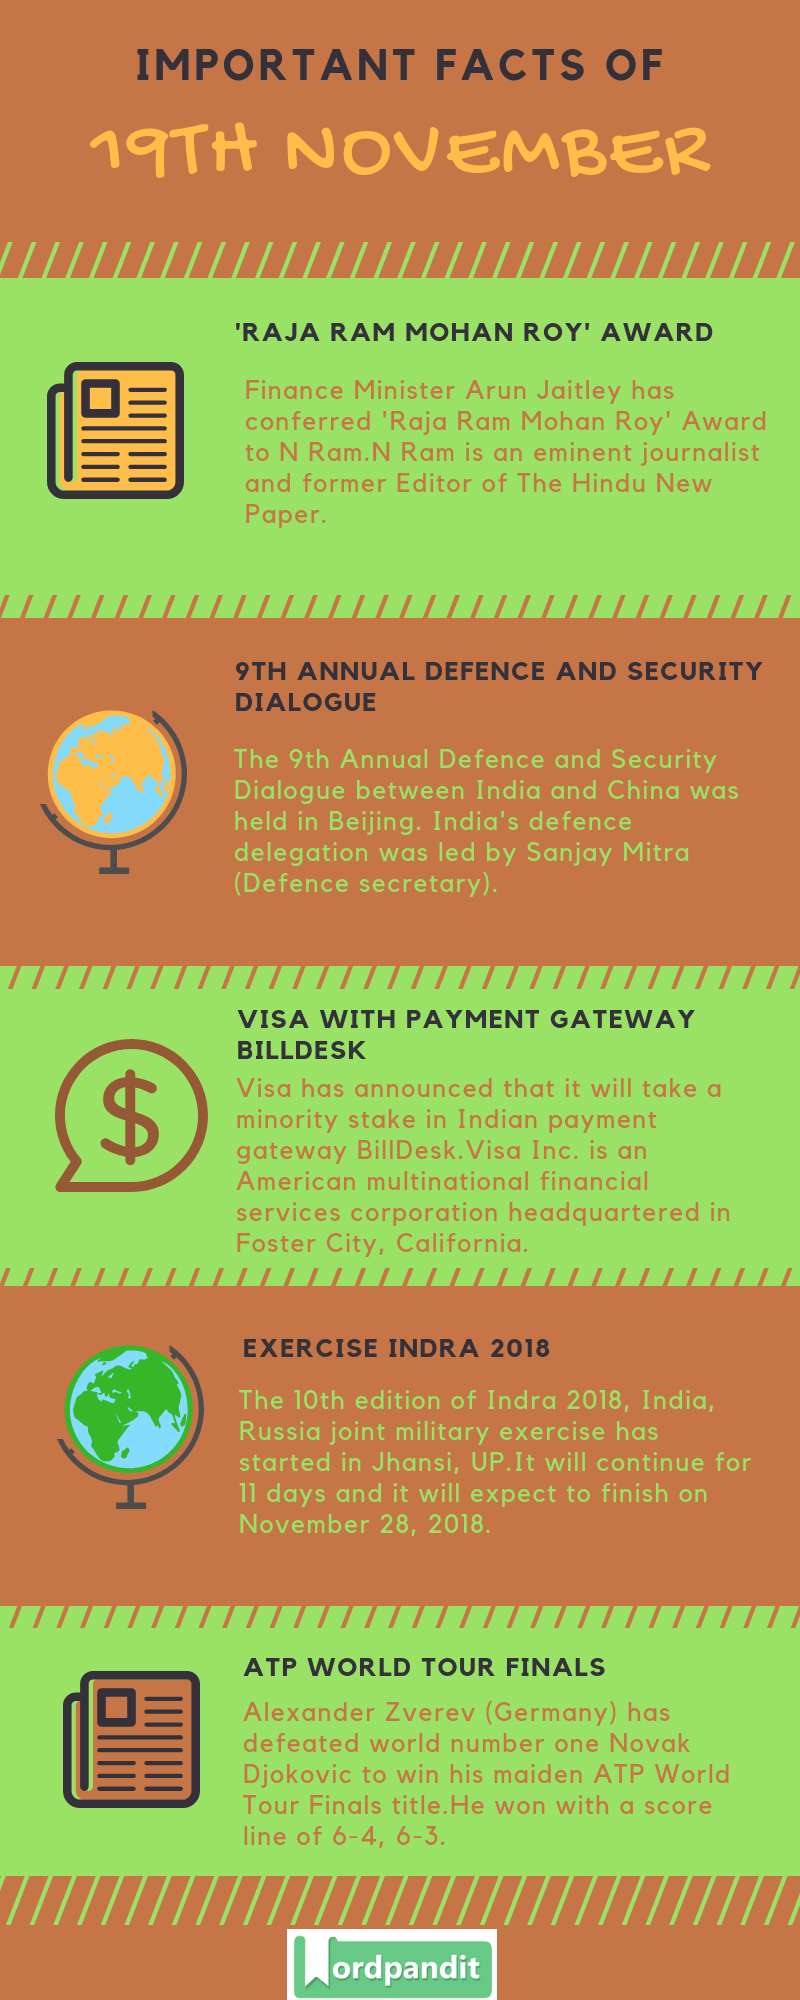 Daily Current Affairs 19 November 2018 Current Affairs Quiz 19November 2018 Current Affairs Infographic